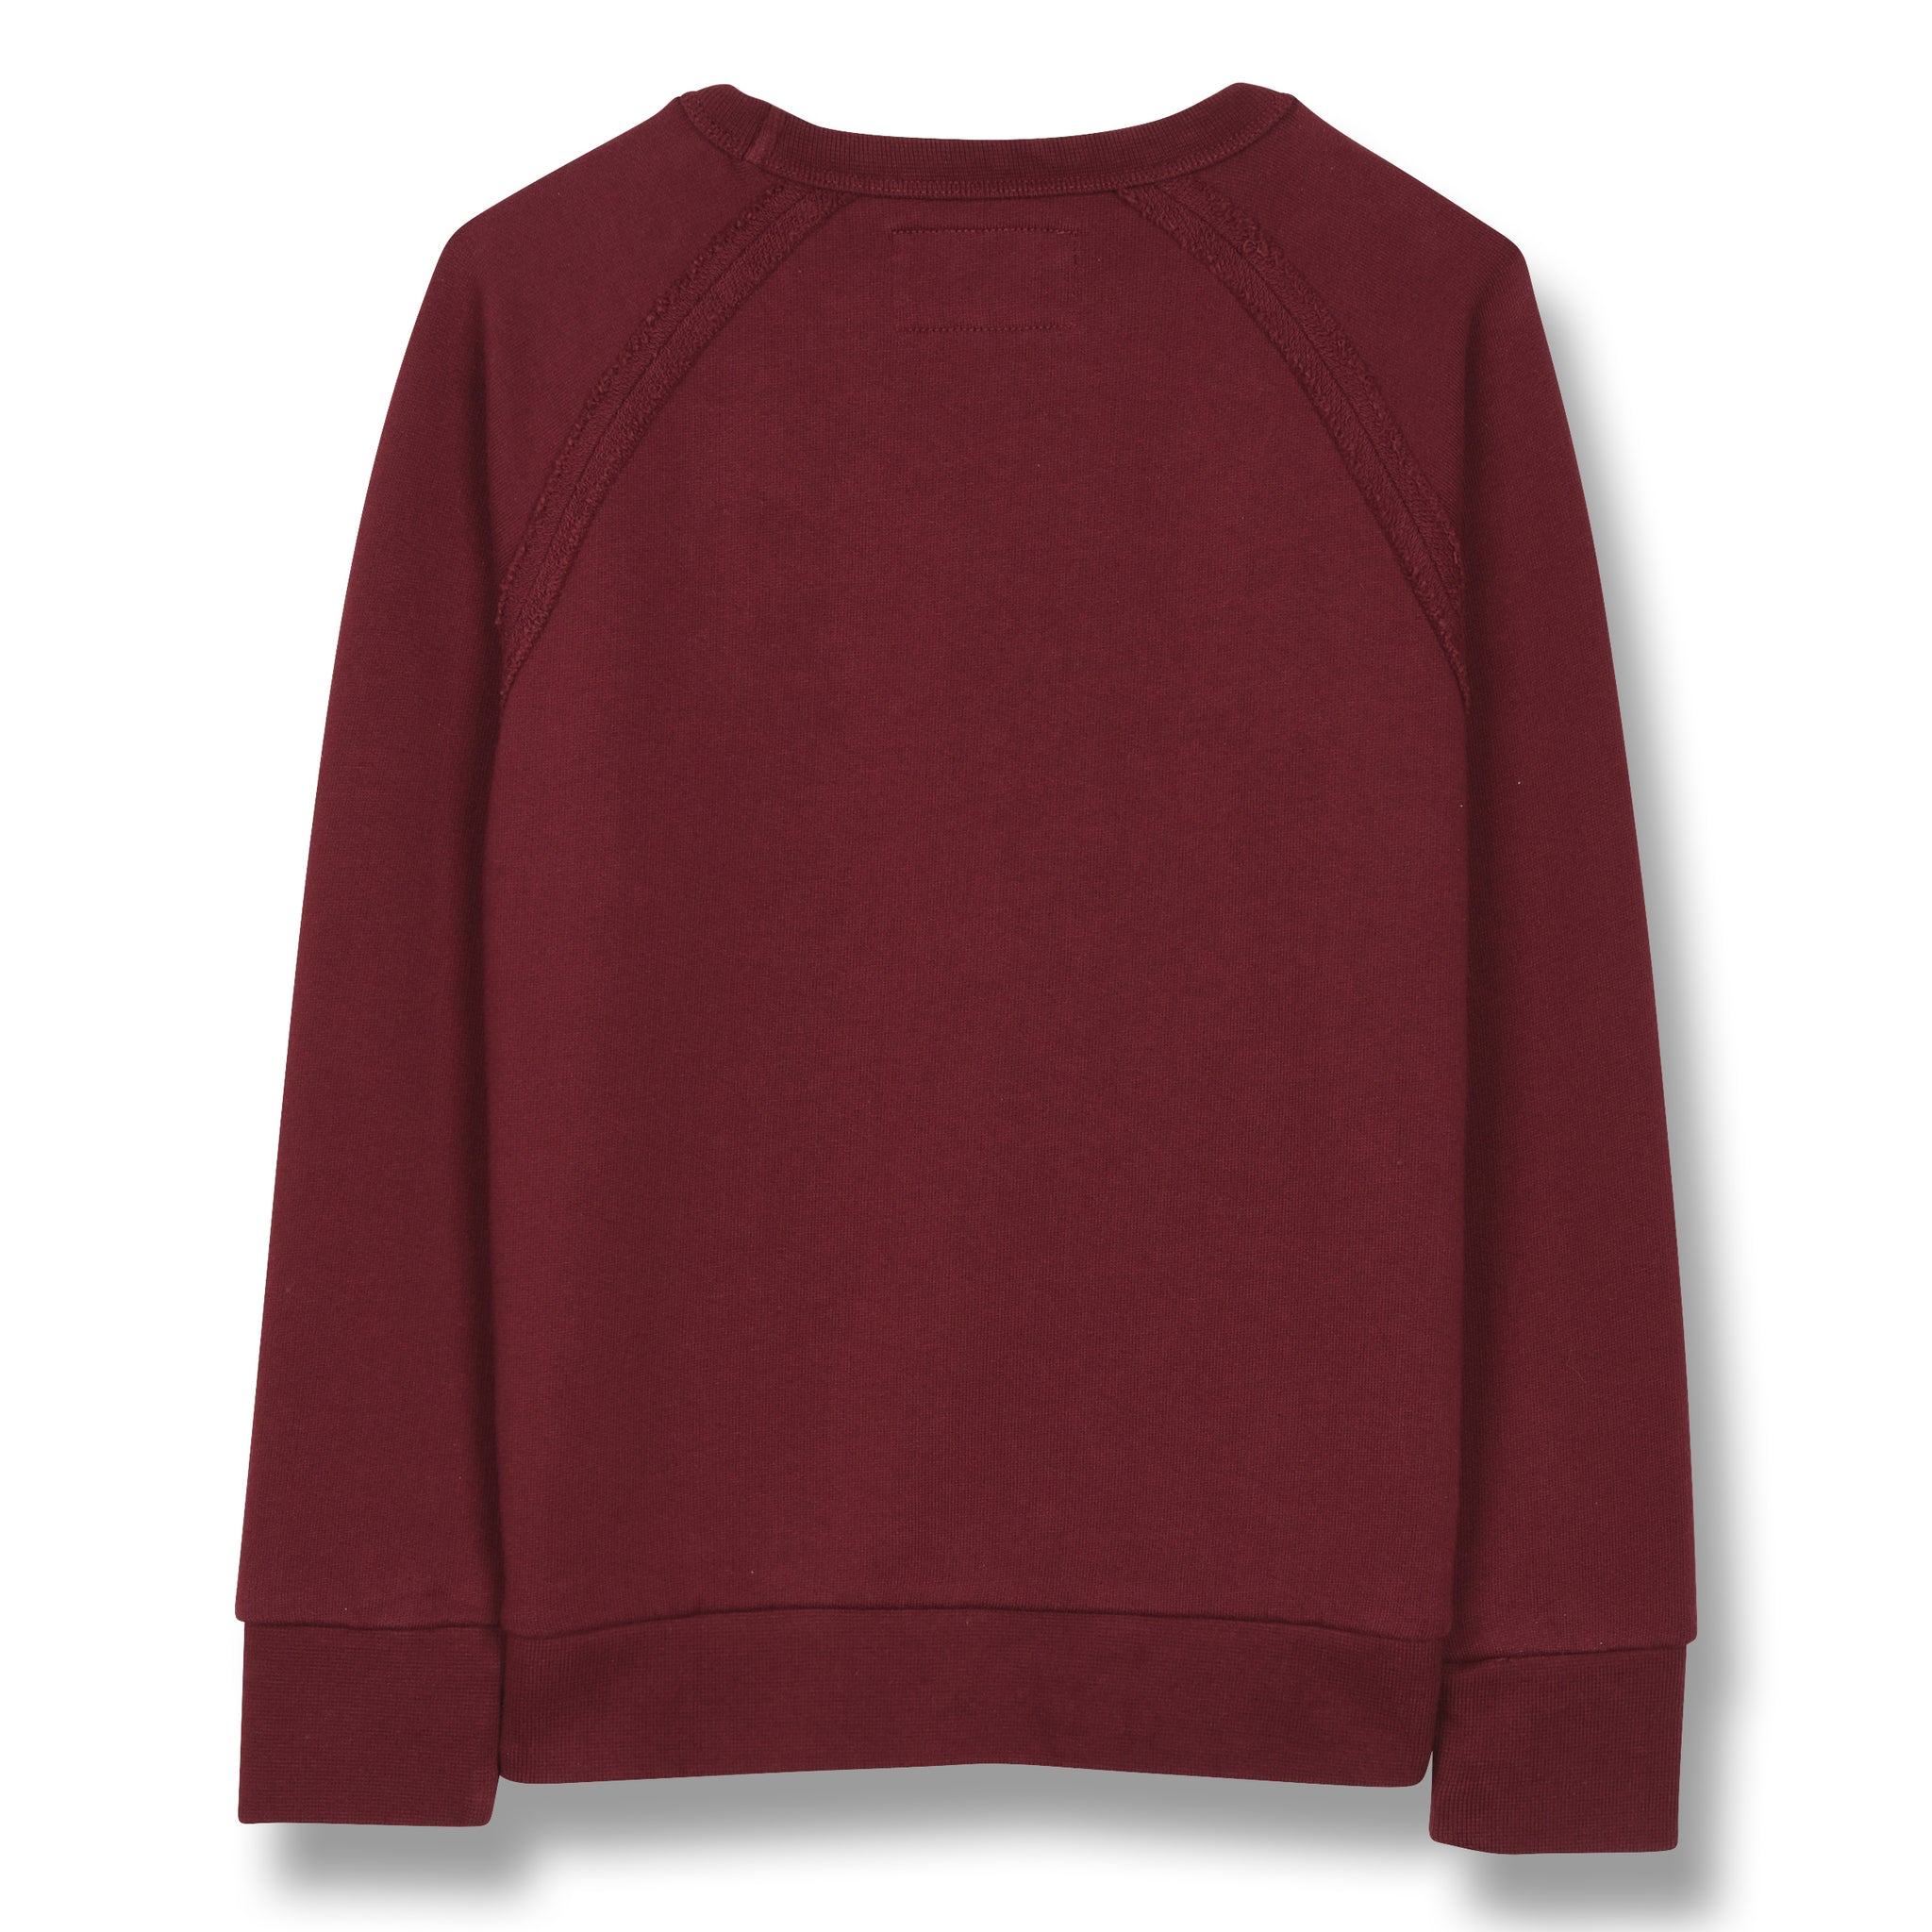 HANK Burgundy Flags - Raglan Sleeves Sweatshirt 1